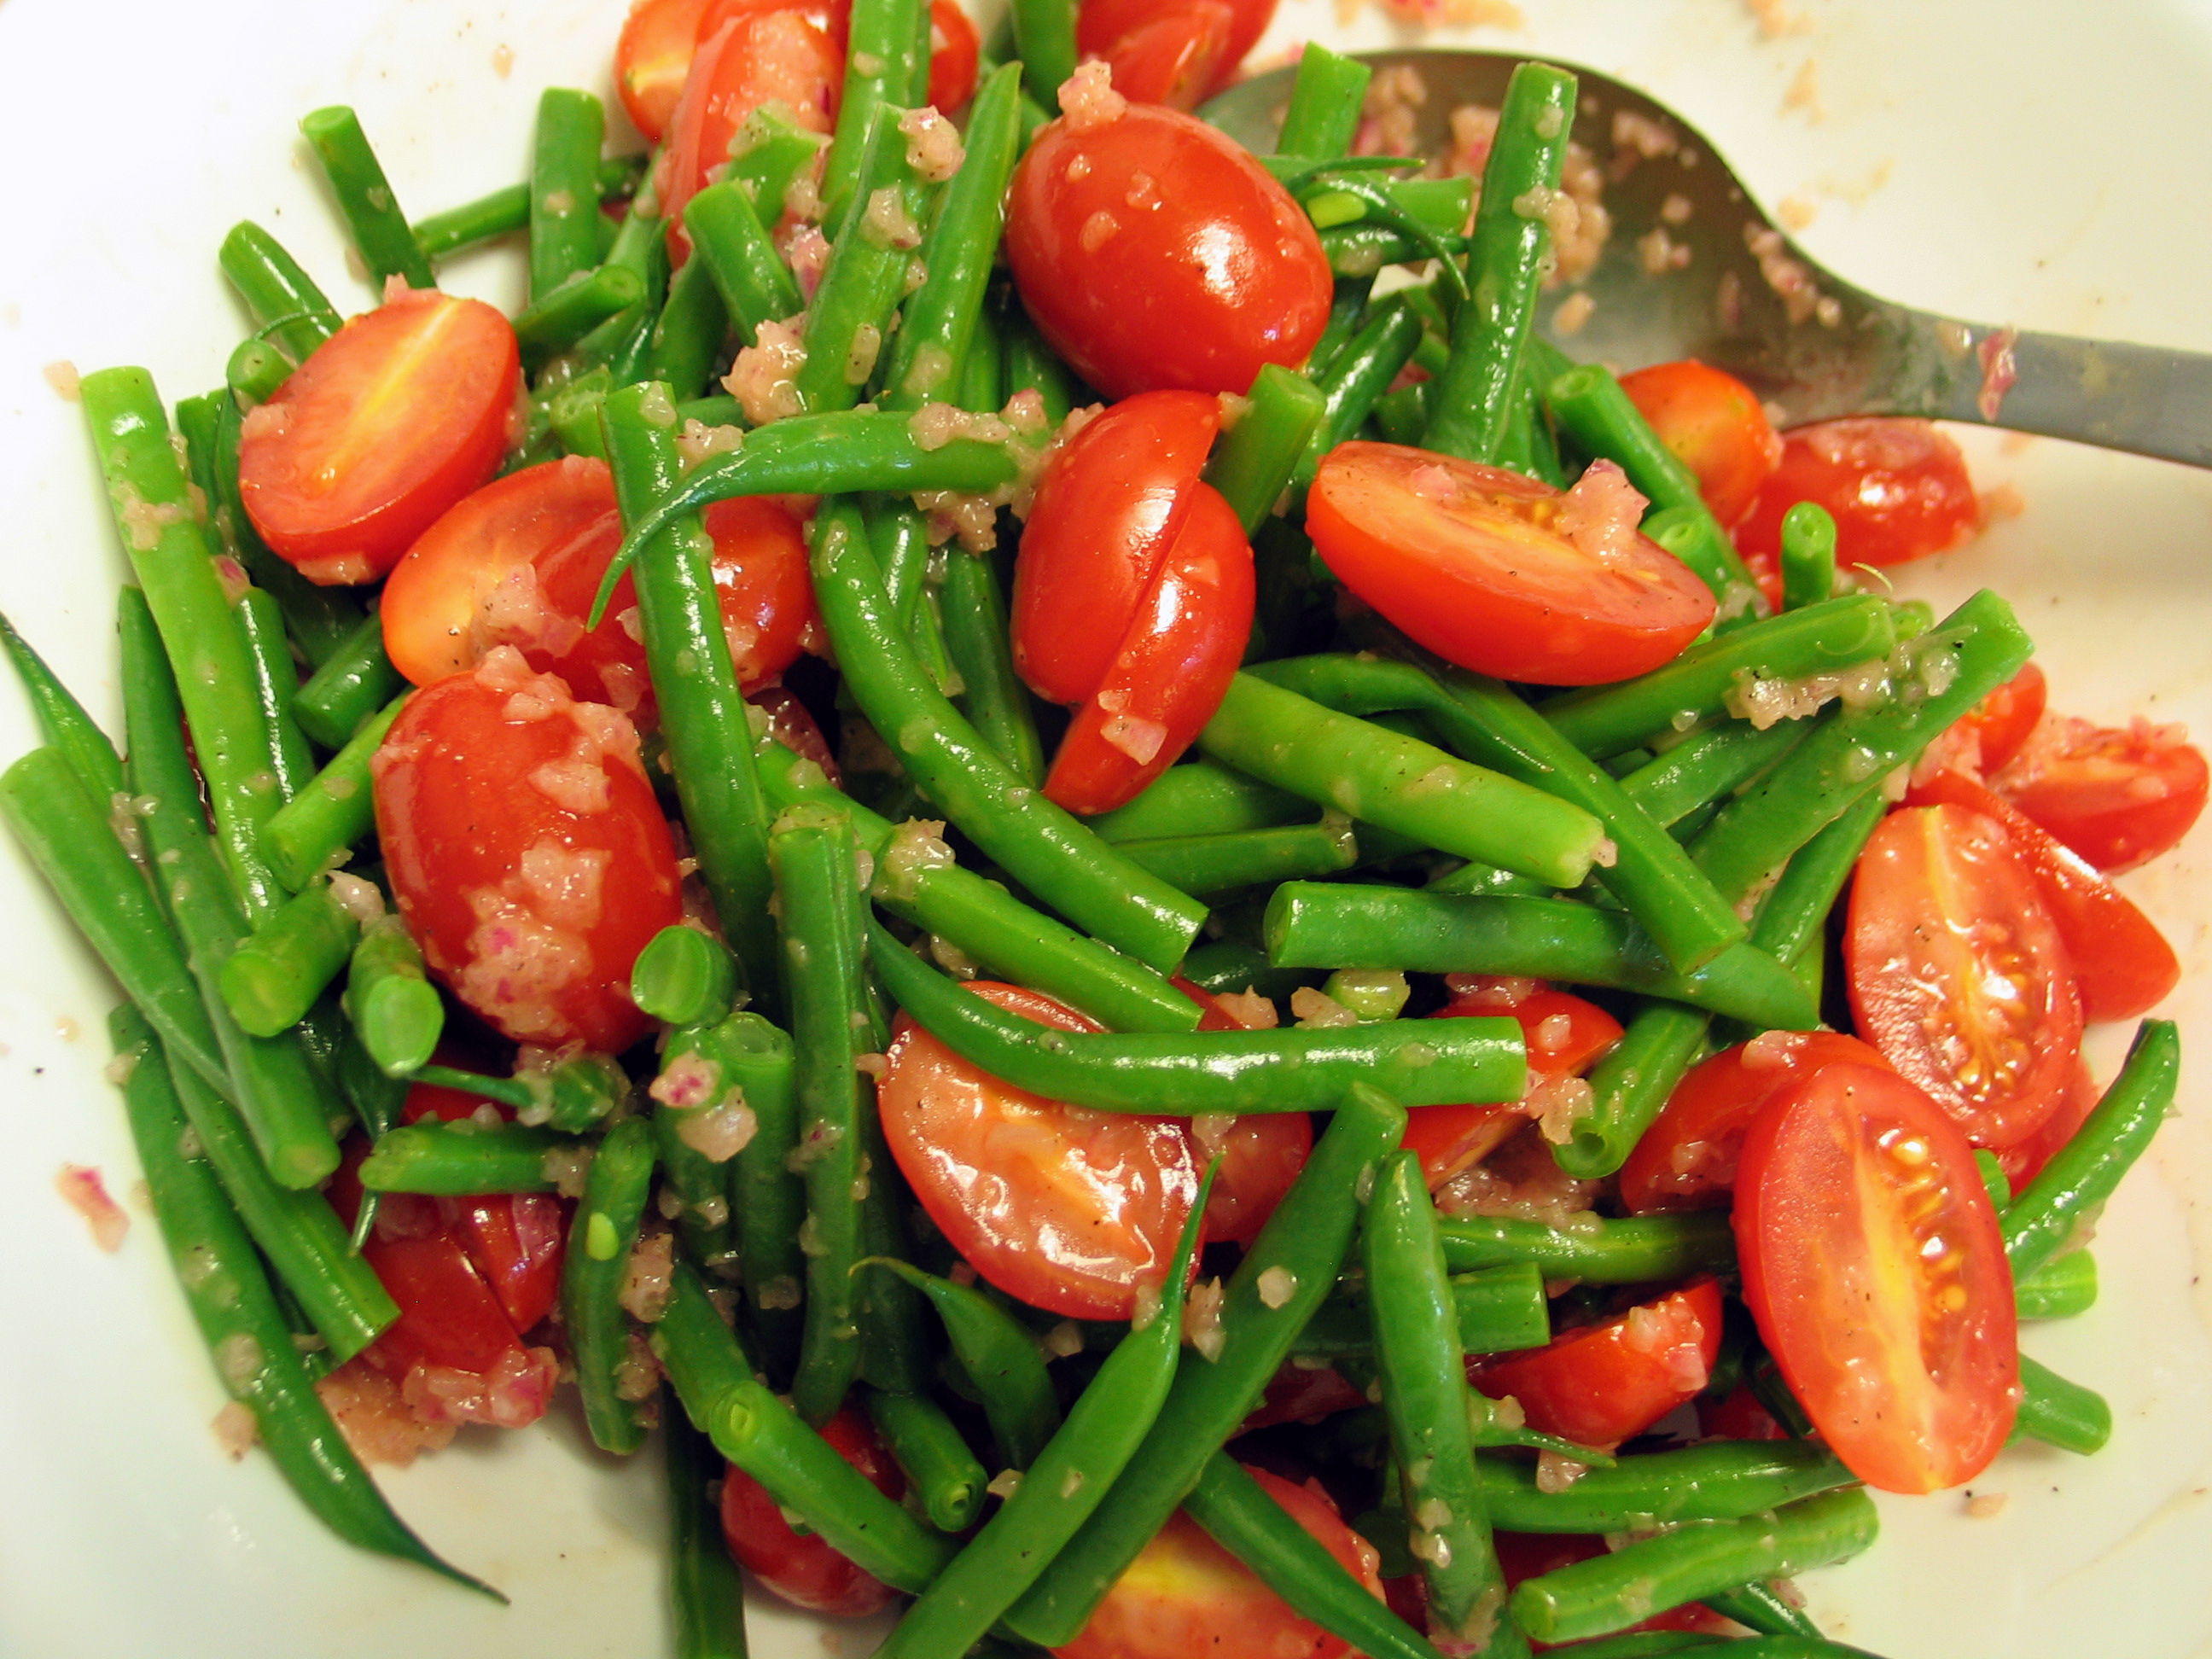 Deanna's Daughter | Green Bean and Cherry Tomato Salad